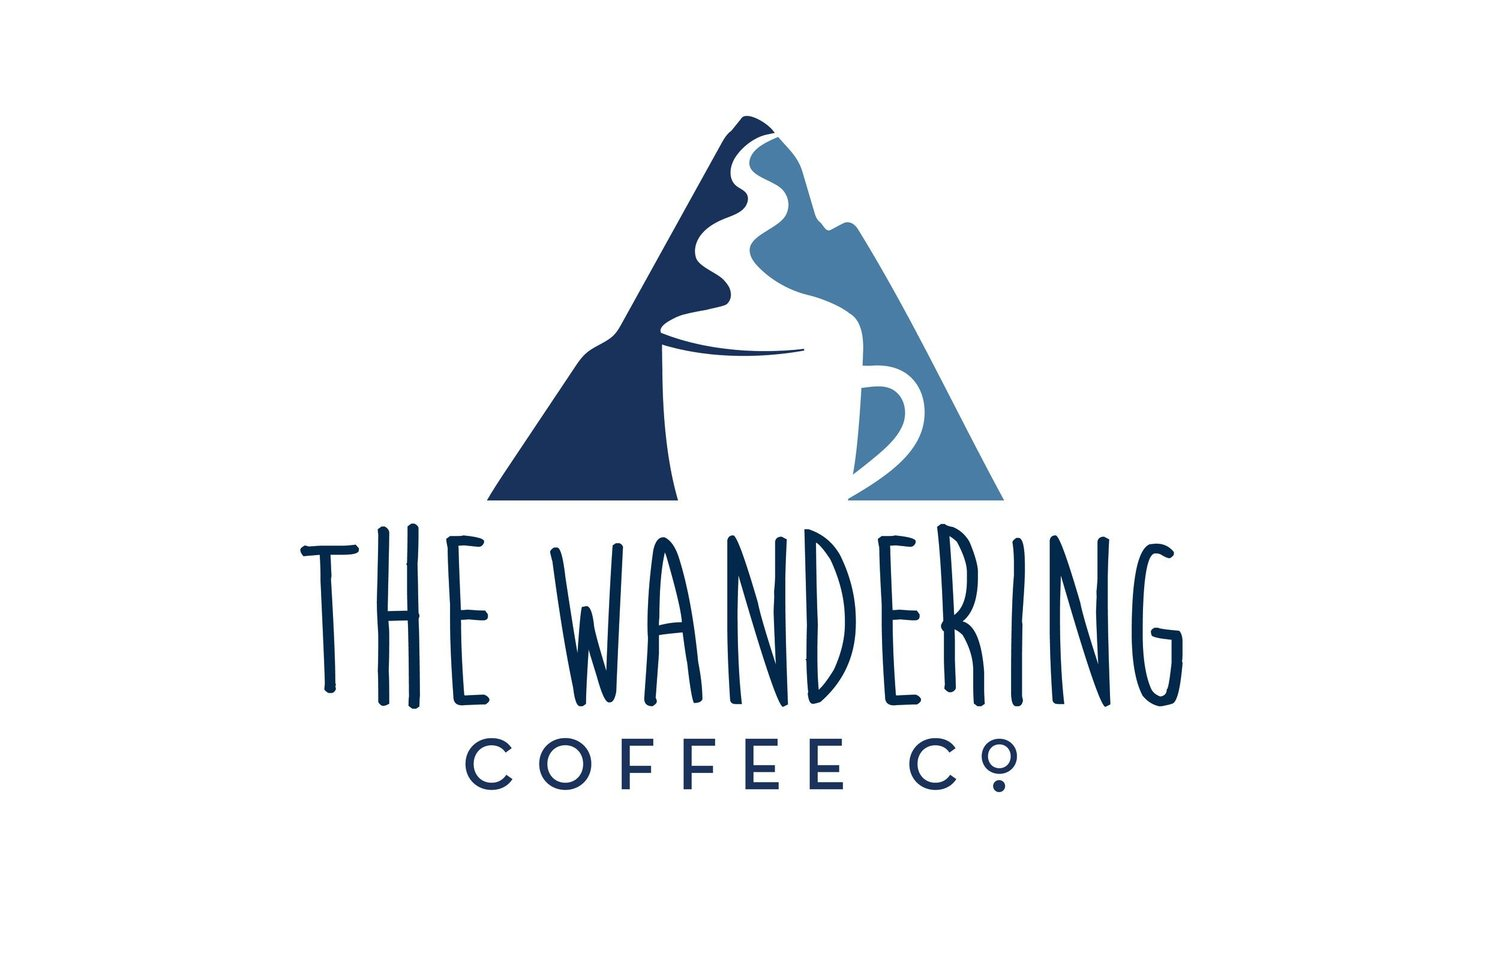 The Wandering Coffee Co